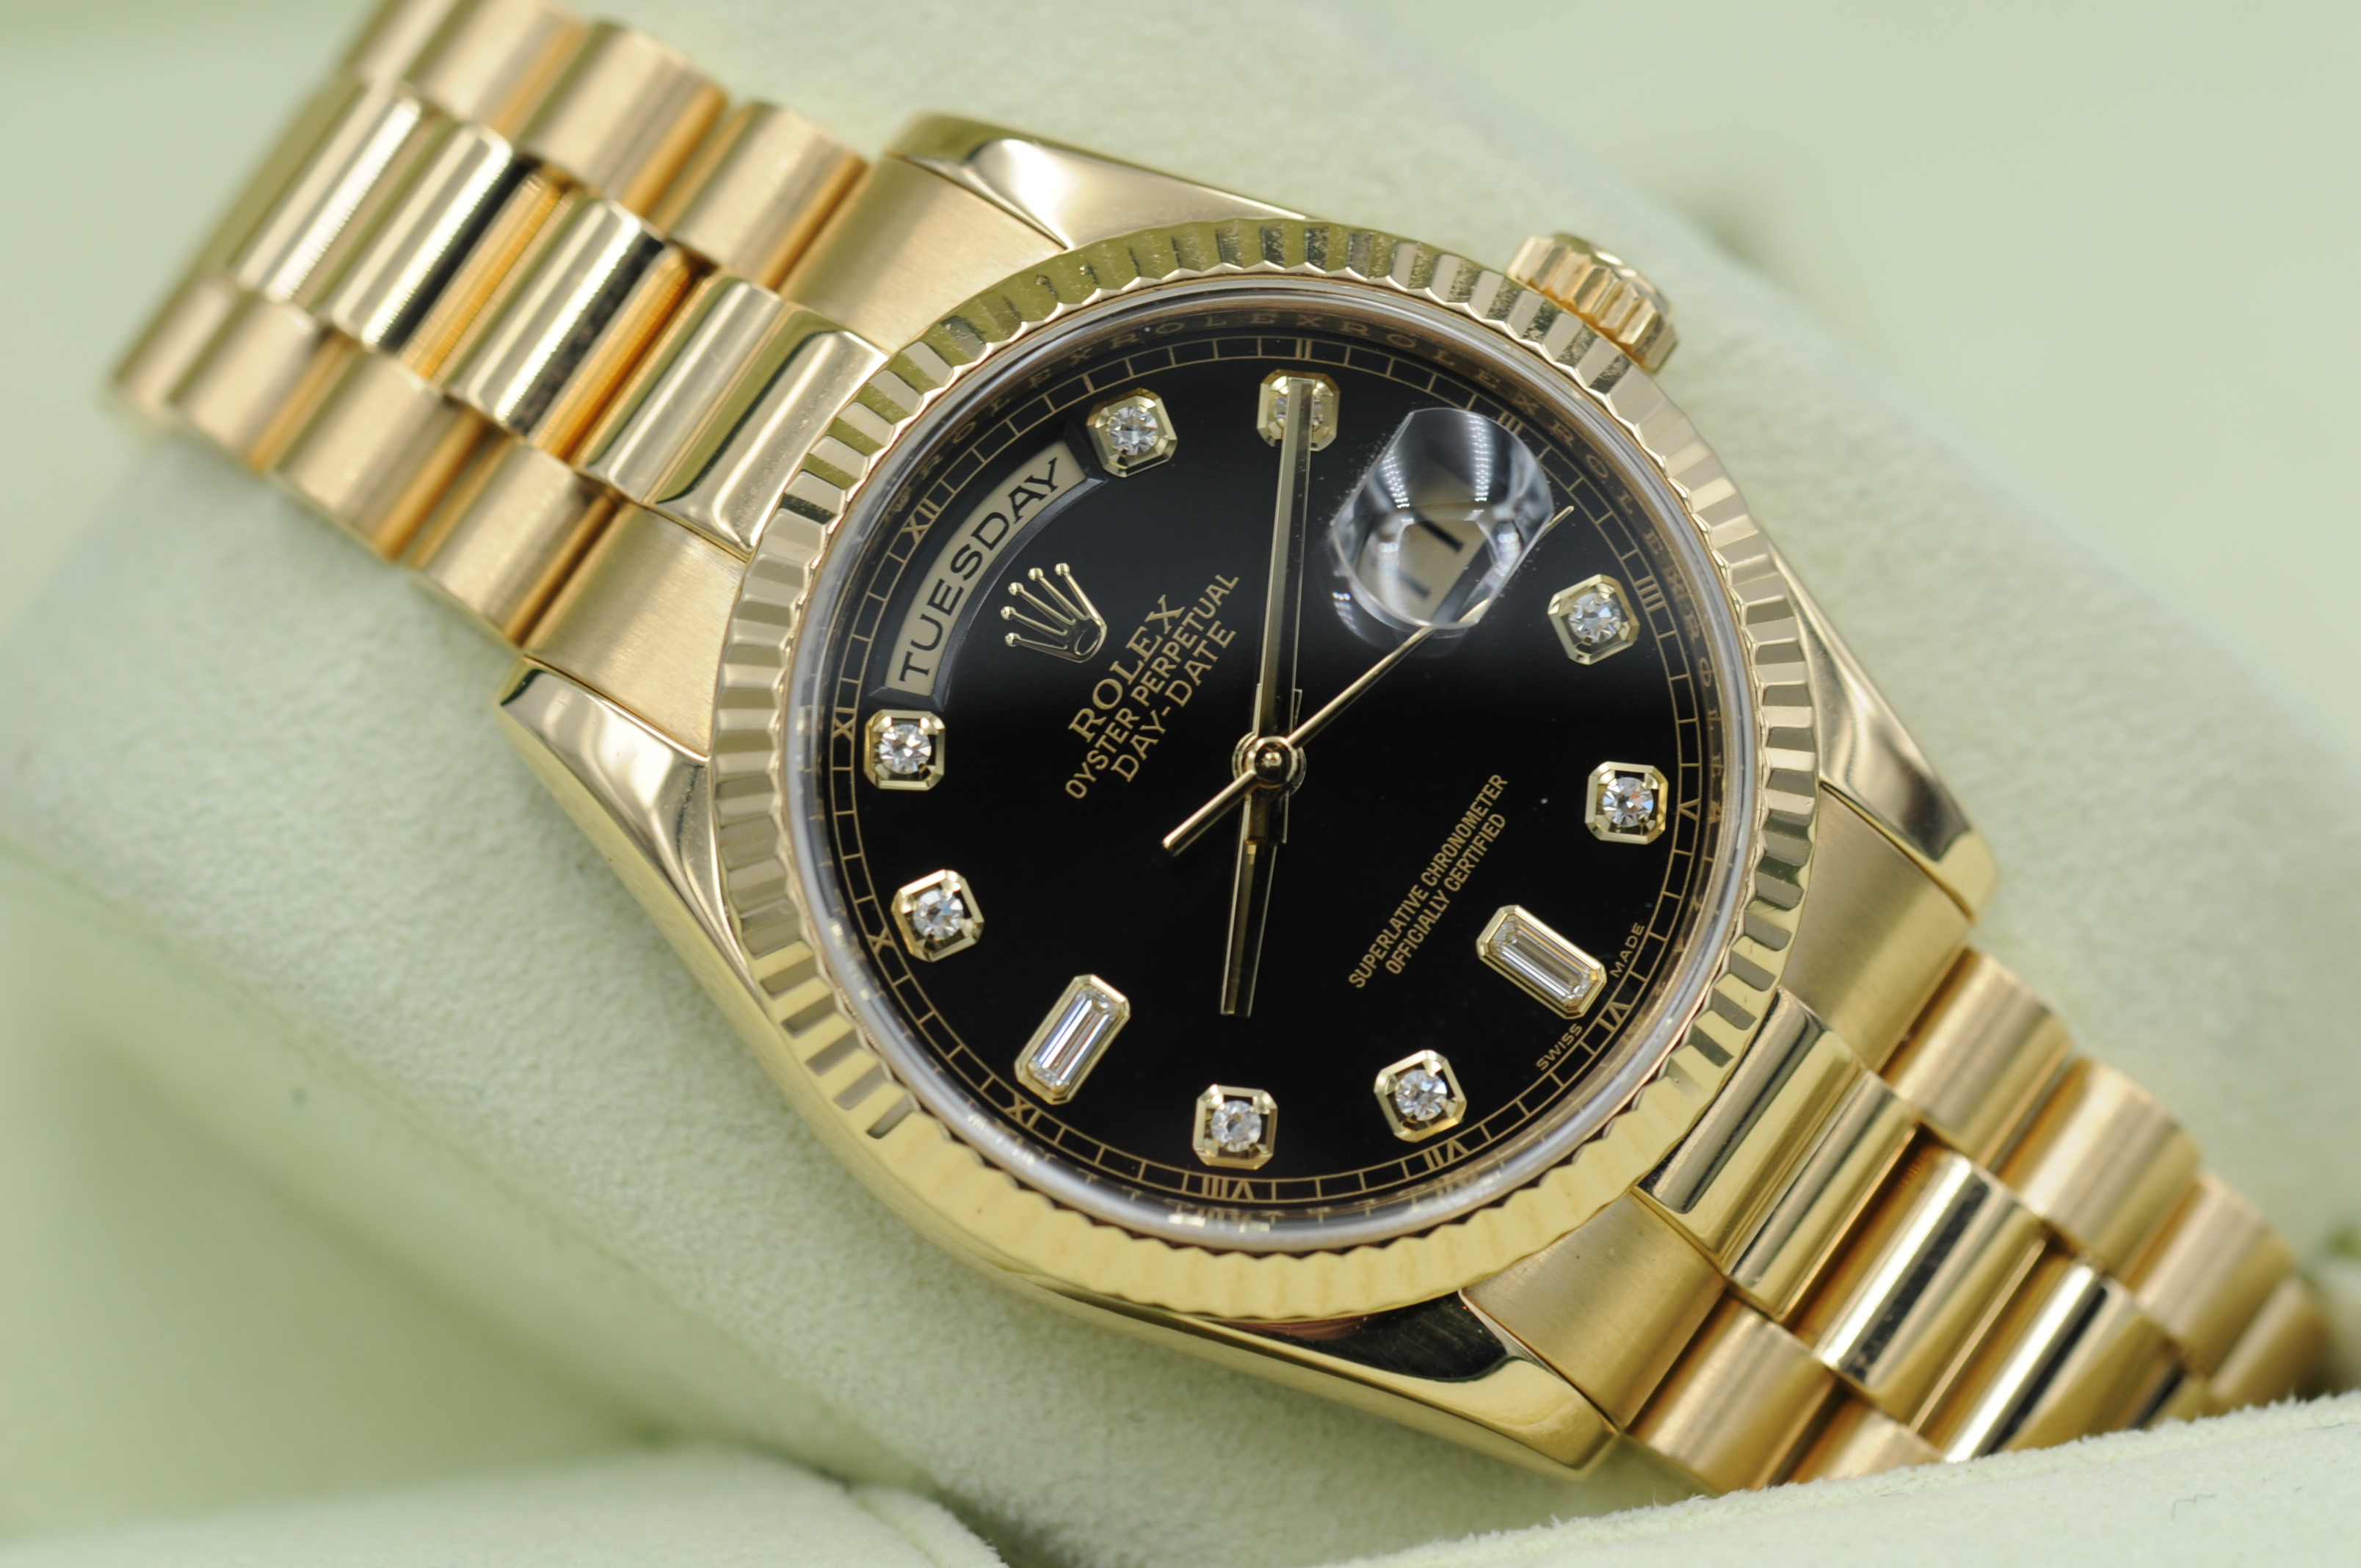 Rolex day date 36 118238 edinburgh watch company luxury timepieces for Rolex day date 36